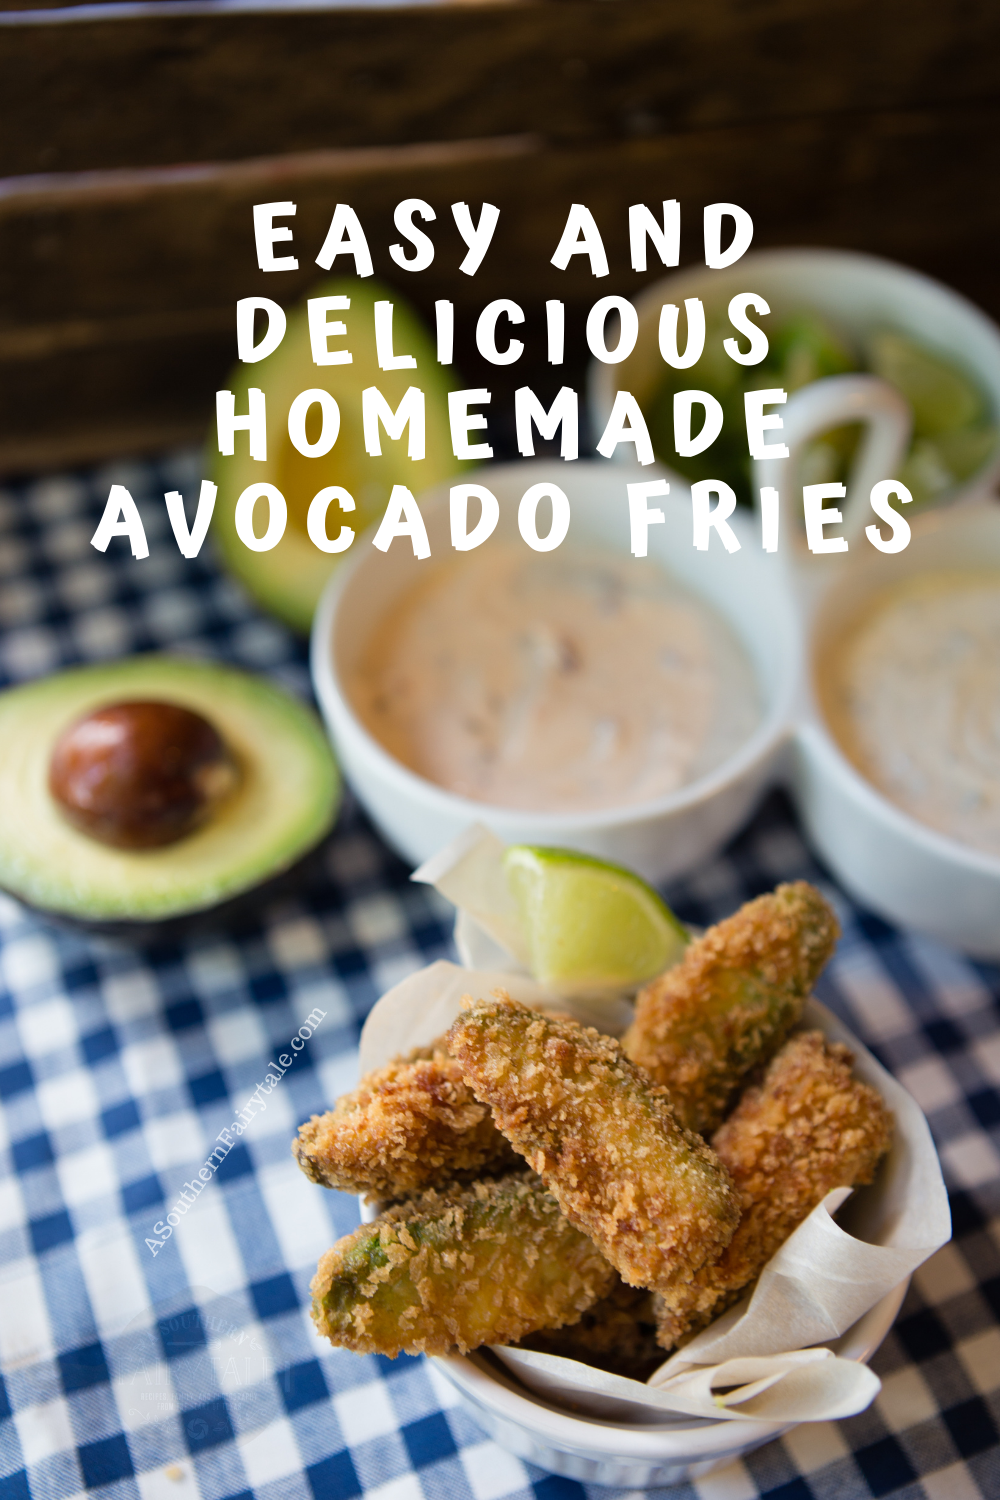 easy and delicious homemade avocado fries|asouthernfairytale.com